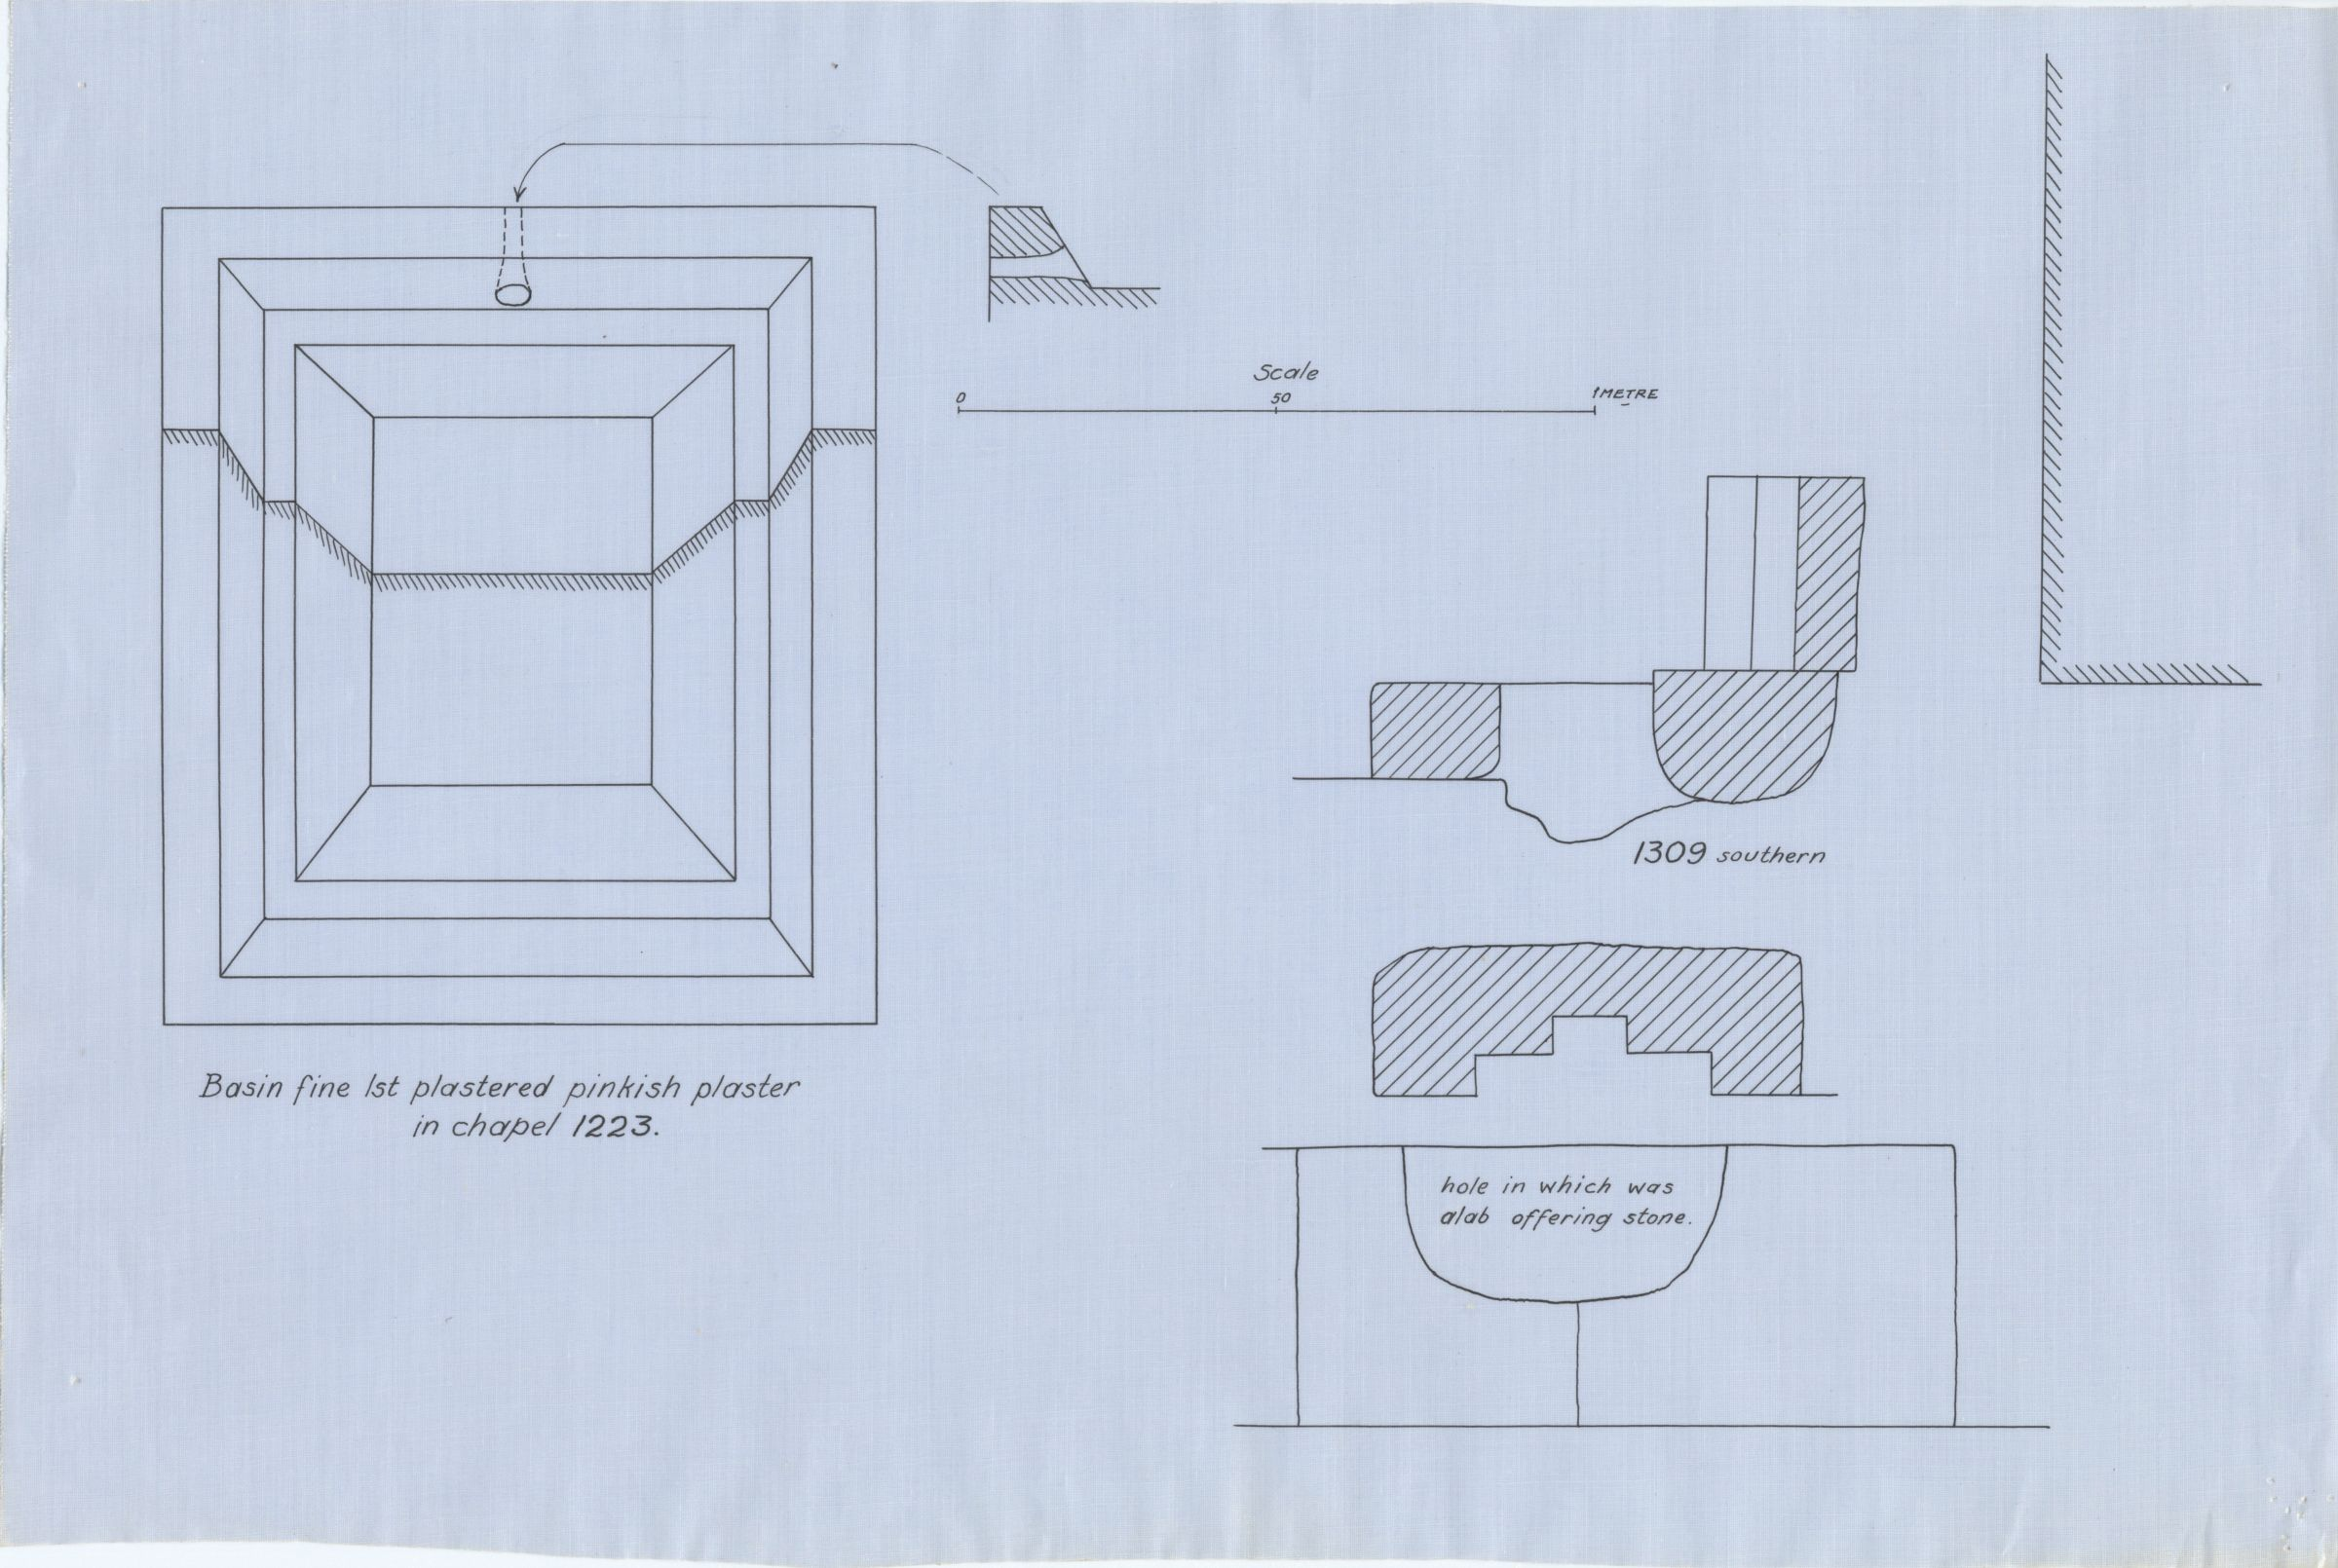 Maps and plans: Drawing of offering basin from G 1223 & Plan and section of G 1309 south niche